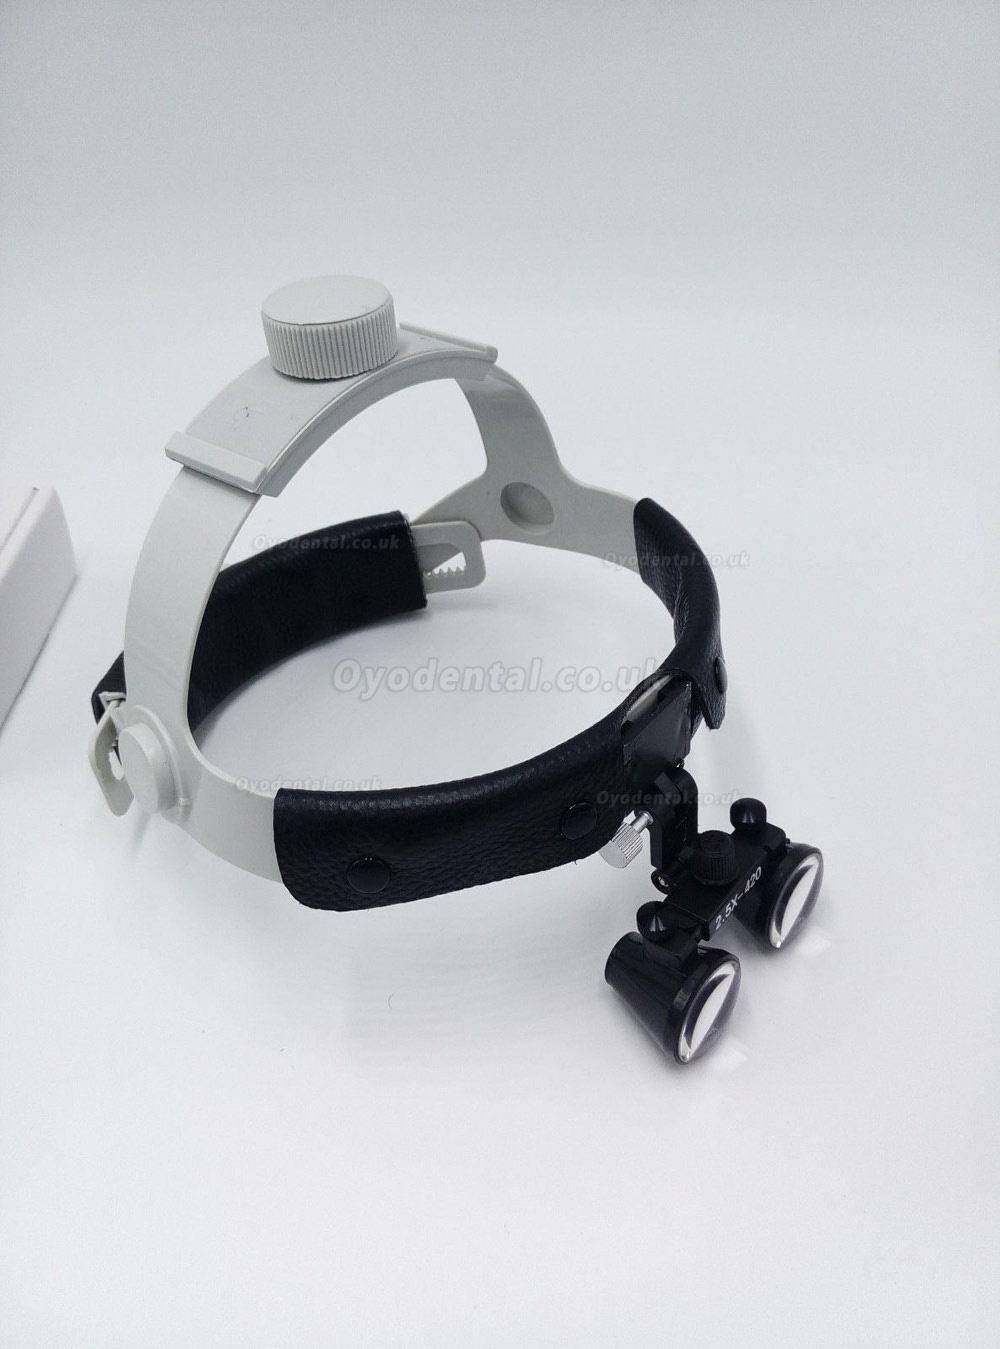 Dental Surgical Binocular 2.5X420mm Leather Headband Loupe with LED Headlight